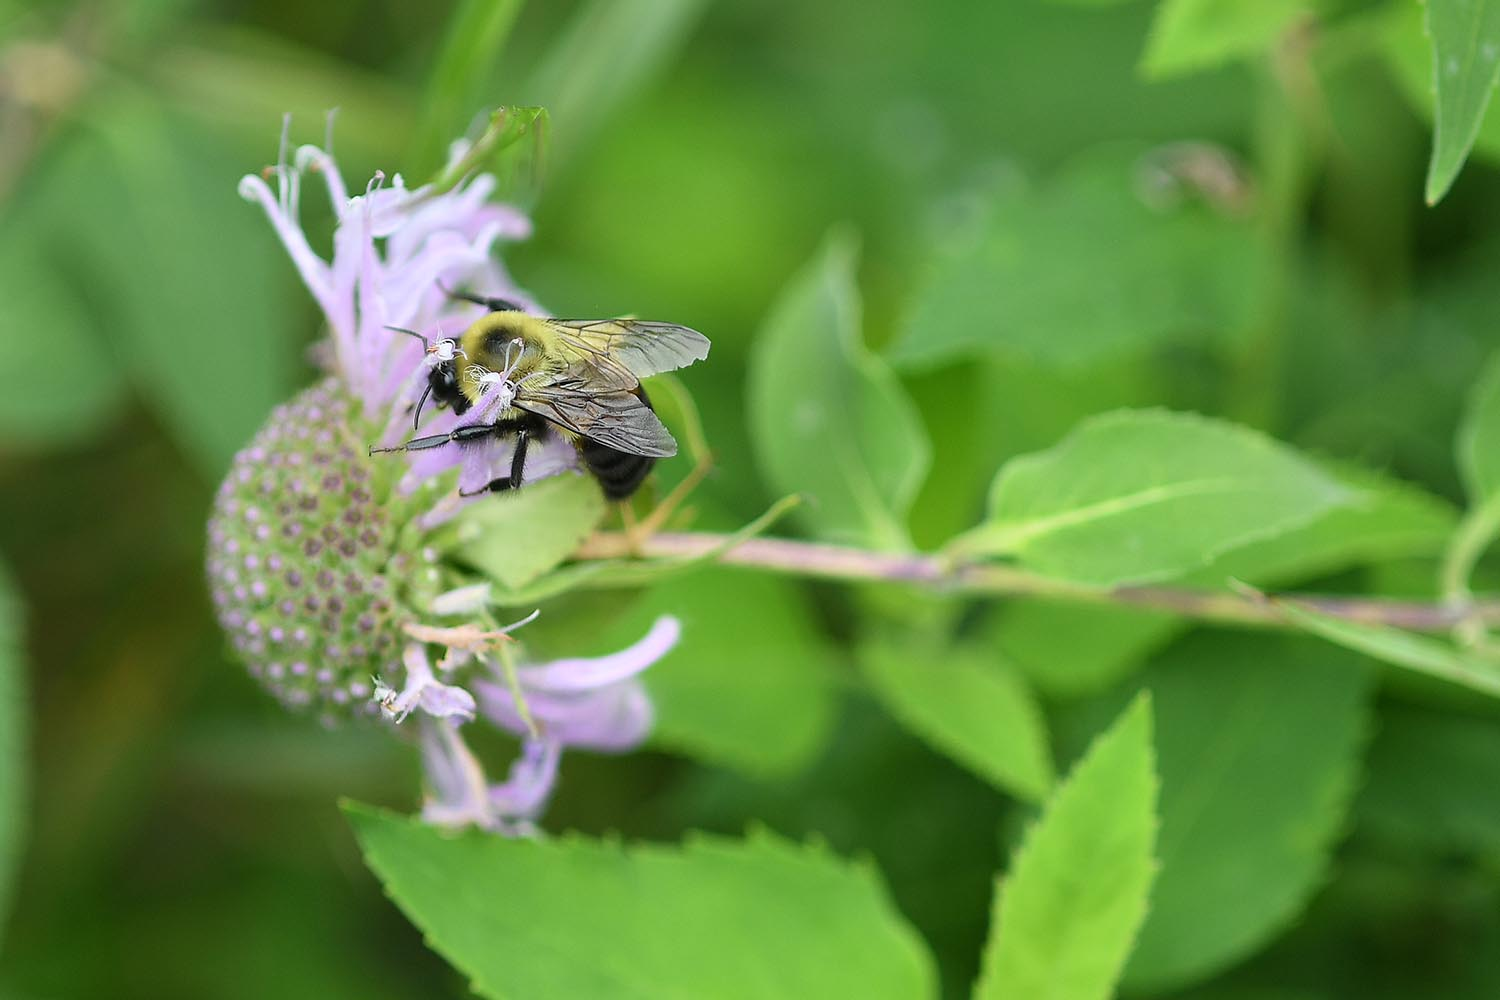 A bumblebee collects pollen from a beebalm flower.